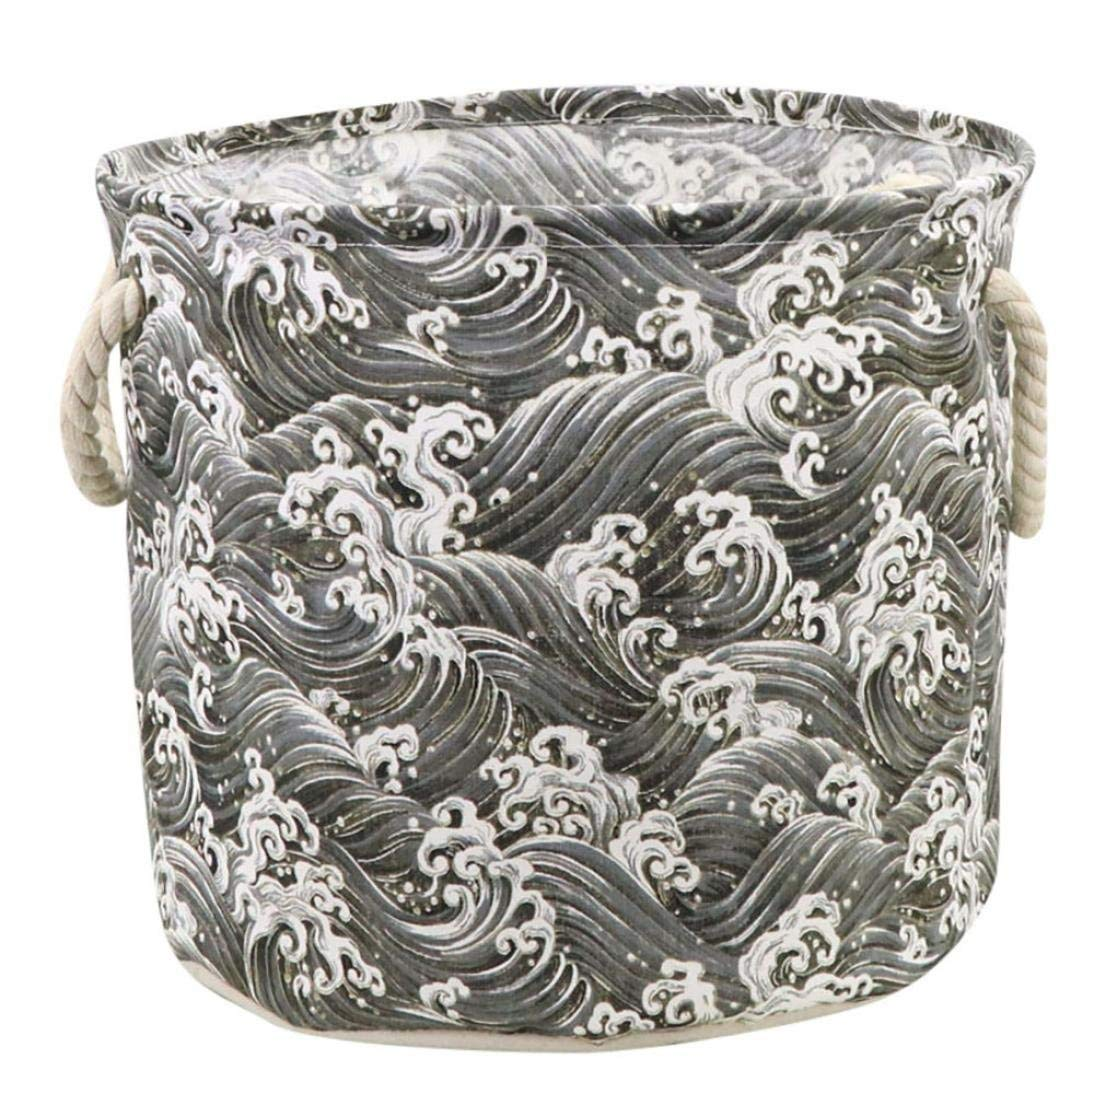 PrettyW Cotton Linen Waterproof Folding Basket Storage Box,Great Capacity Hold Book Clothes Toys Etc. (F)